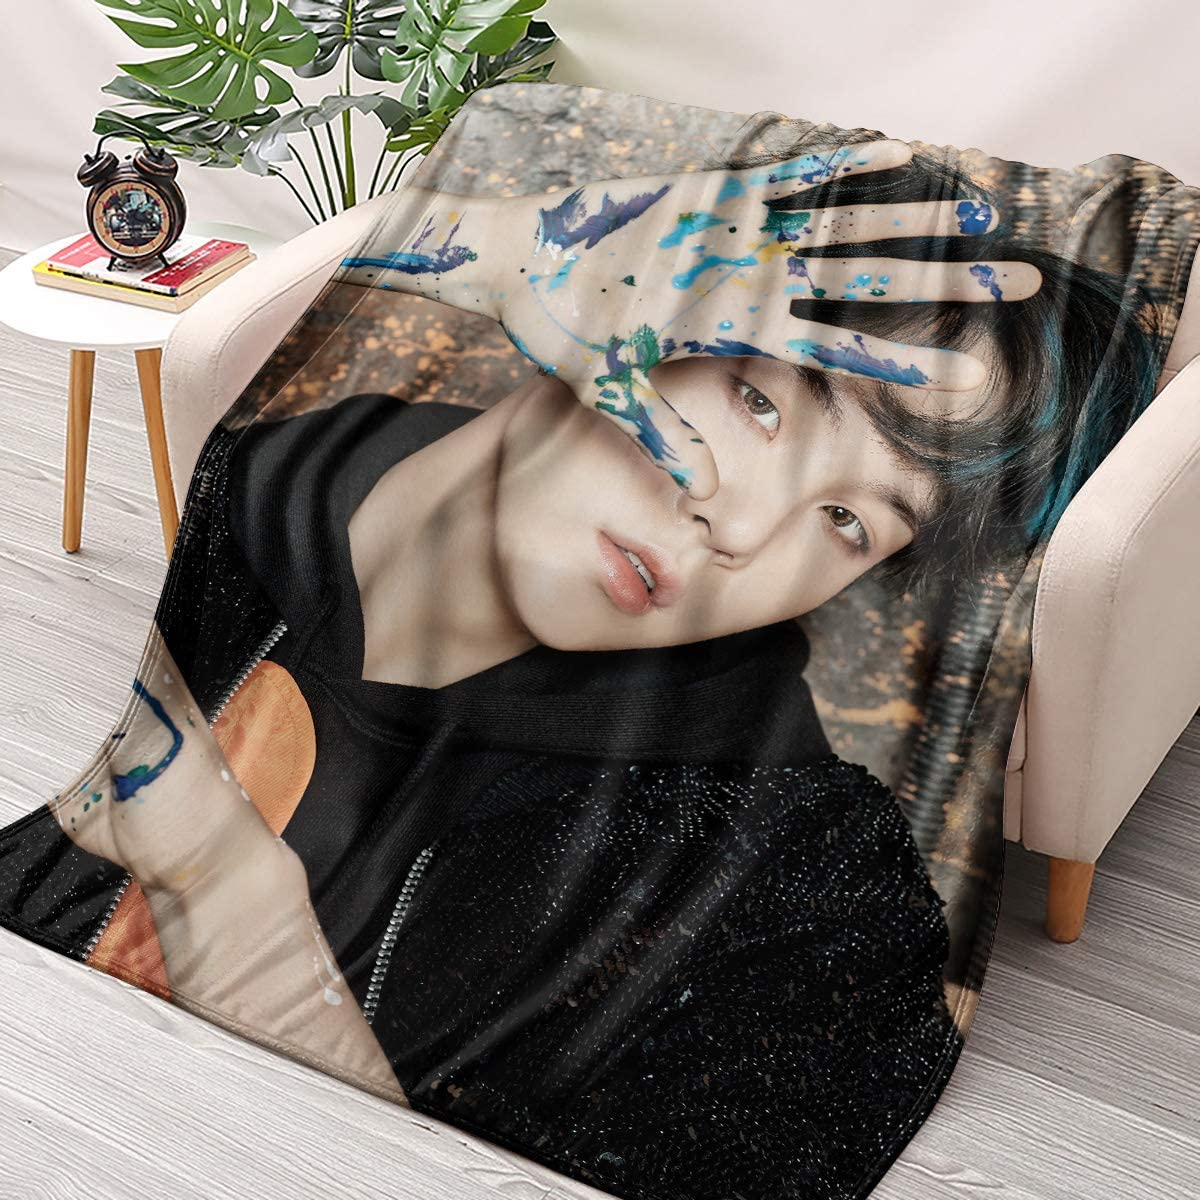 NBBZ Kpop BTS Suga Flannel Throws Blankets Couch Sofa Fuzzy Blanket for Traveling Camping Home (70